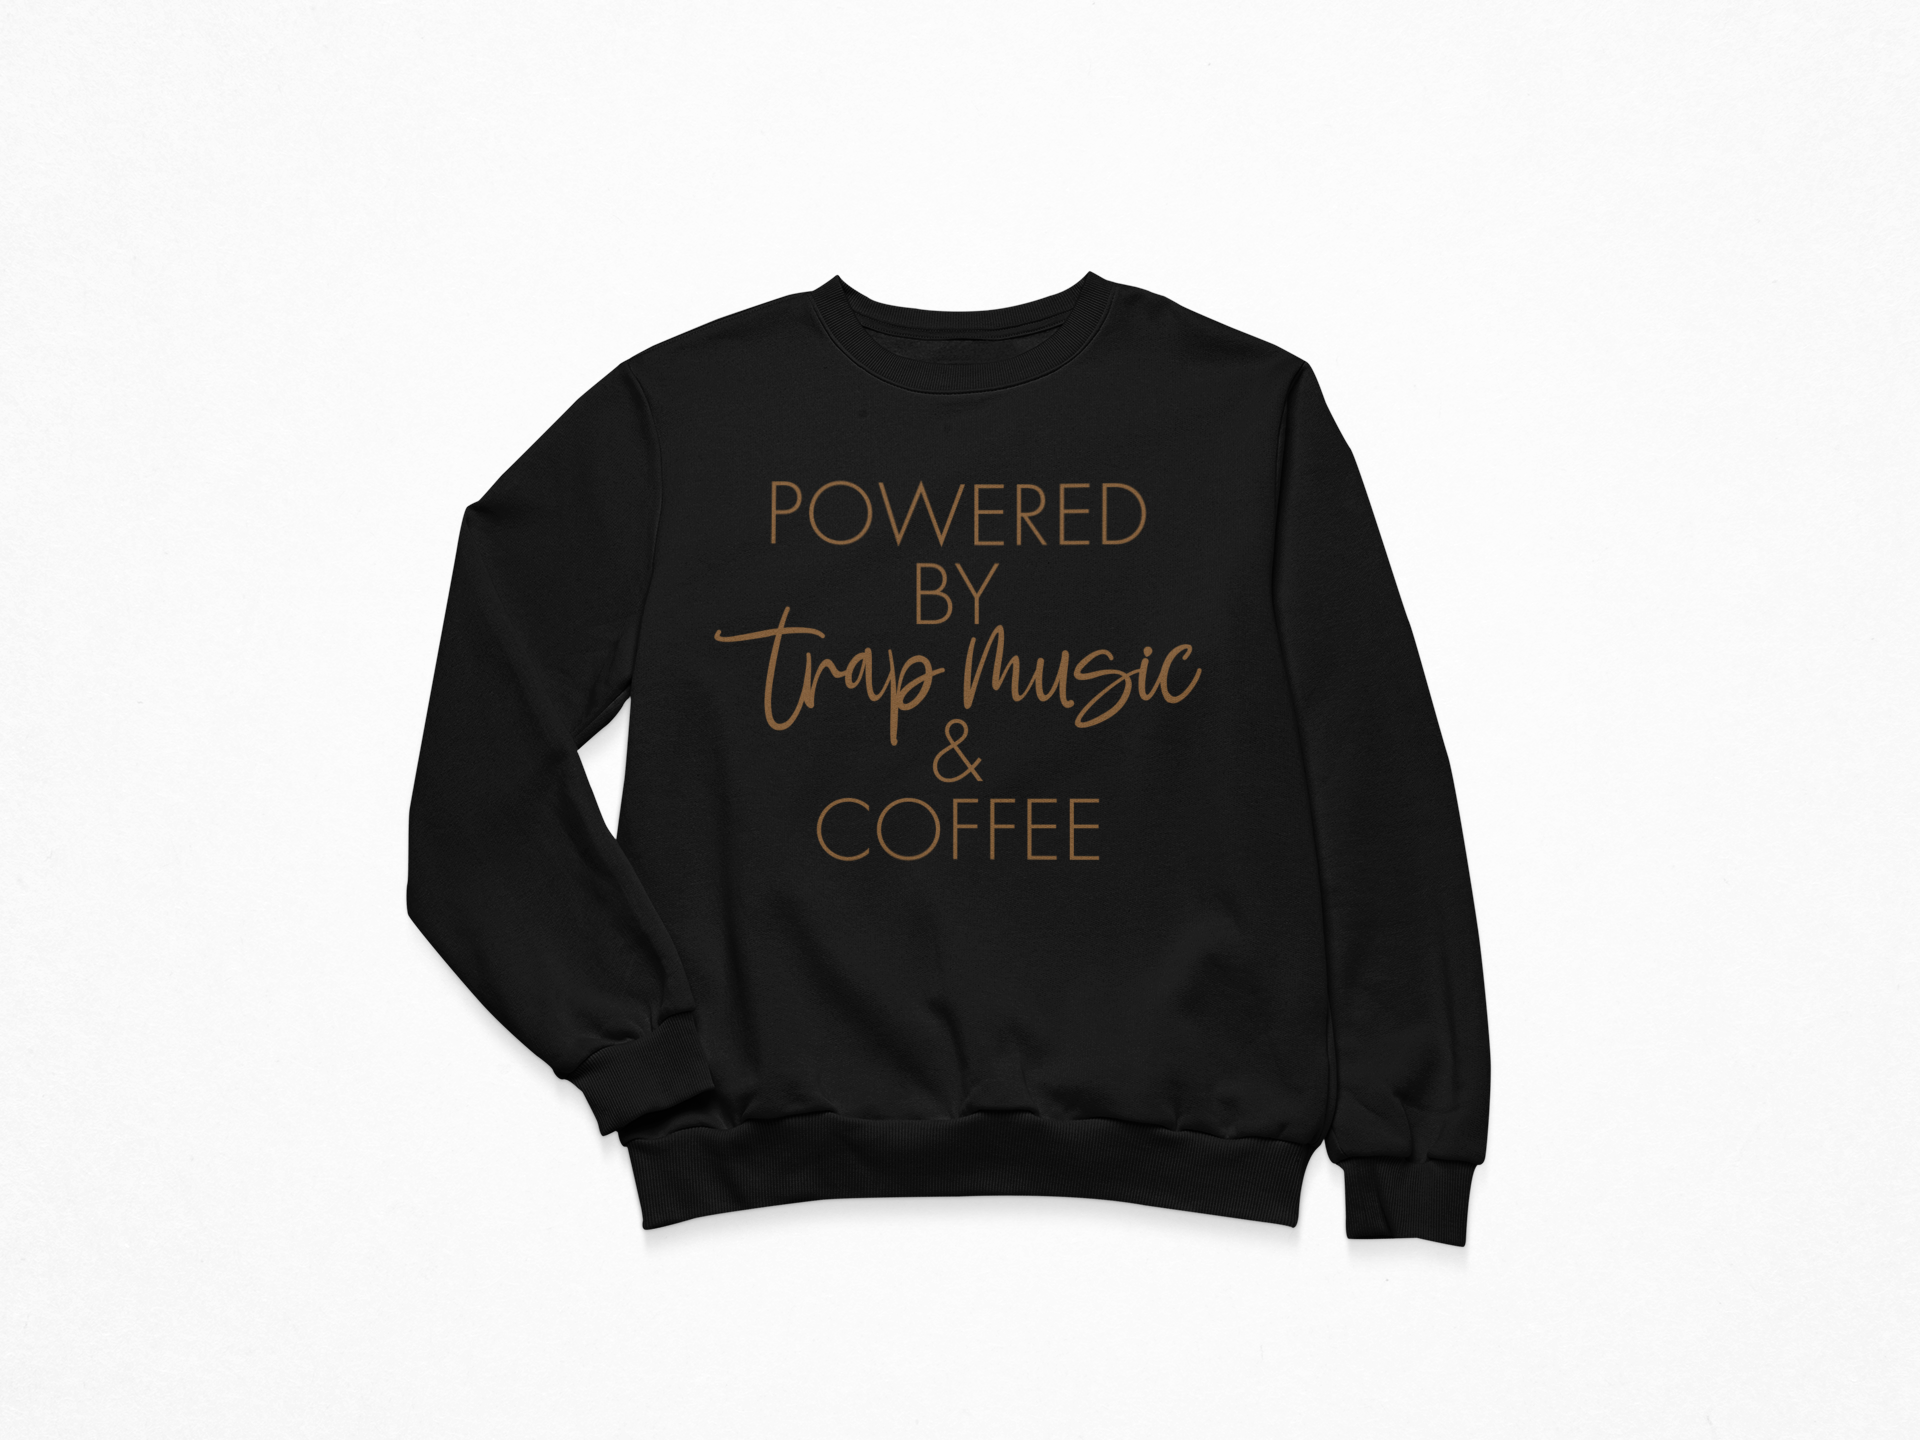 Powered By Trap Music & Coffee Sweatshirt